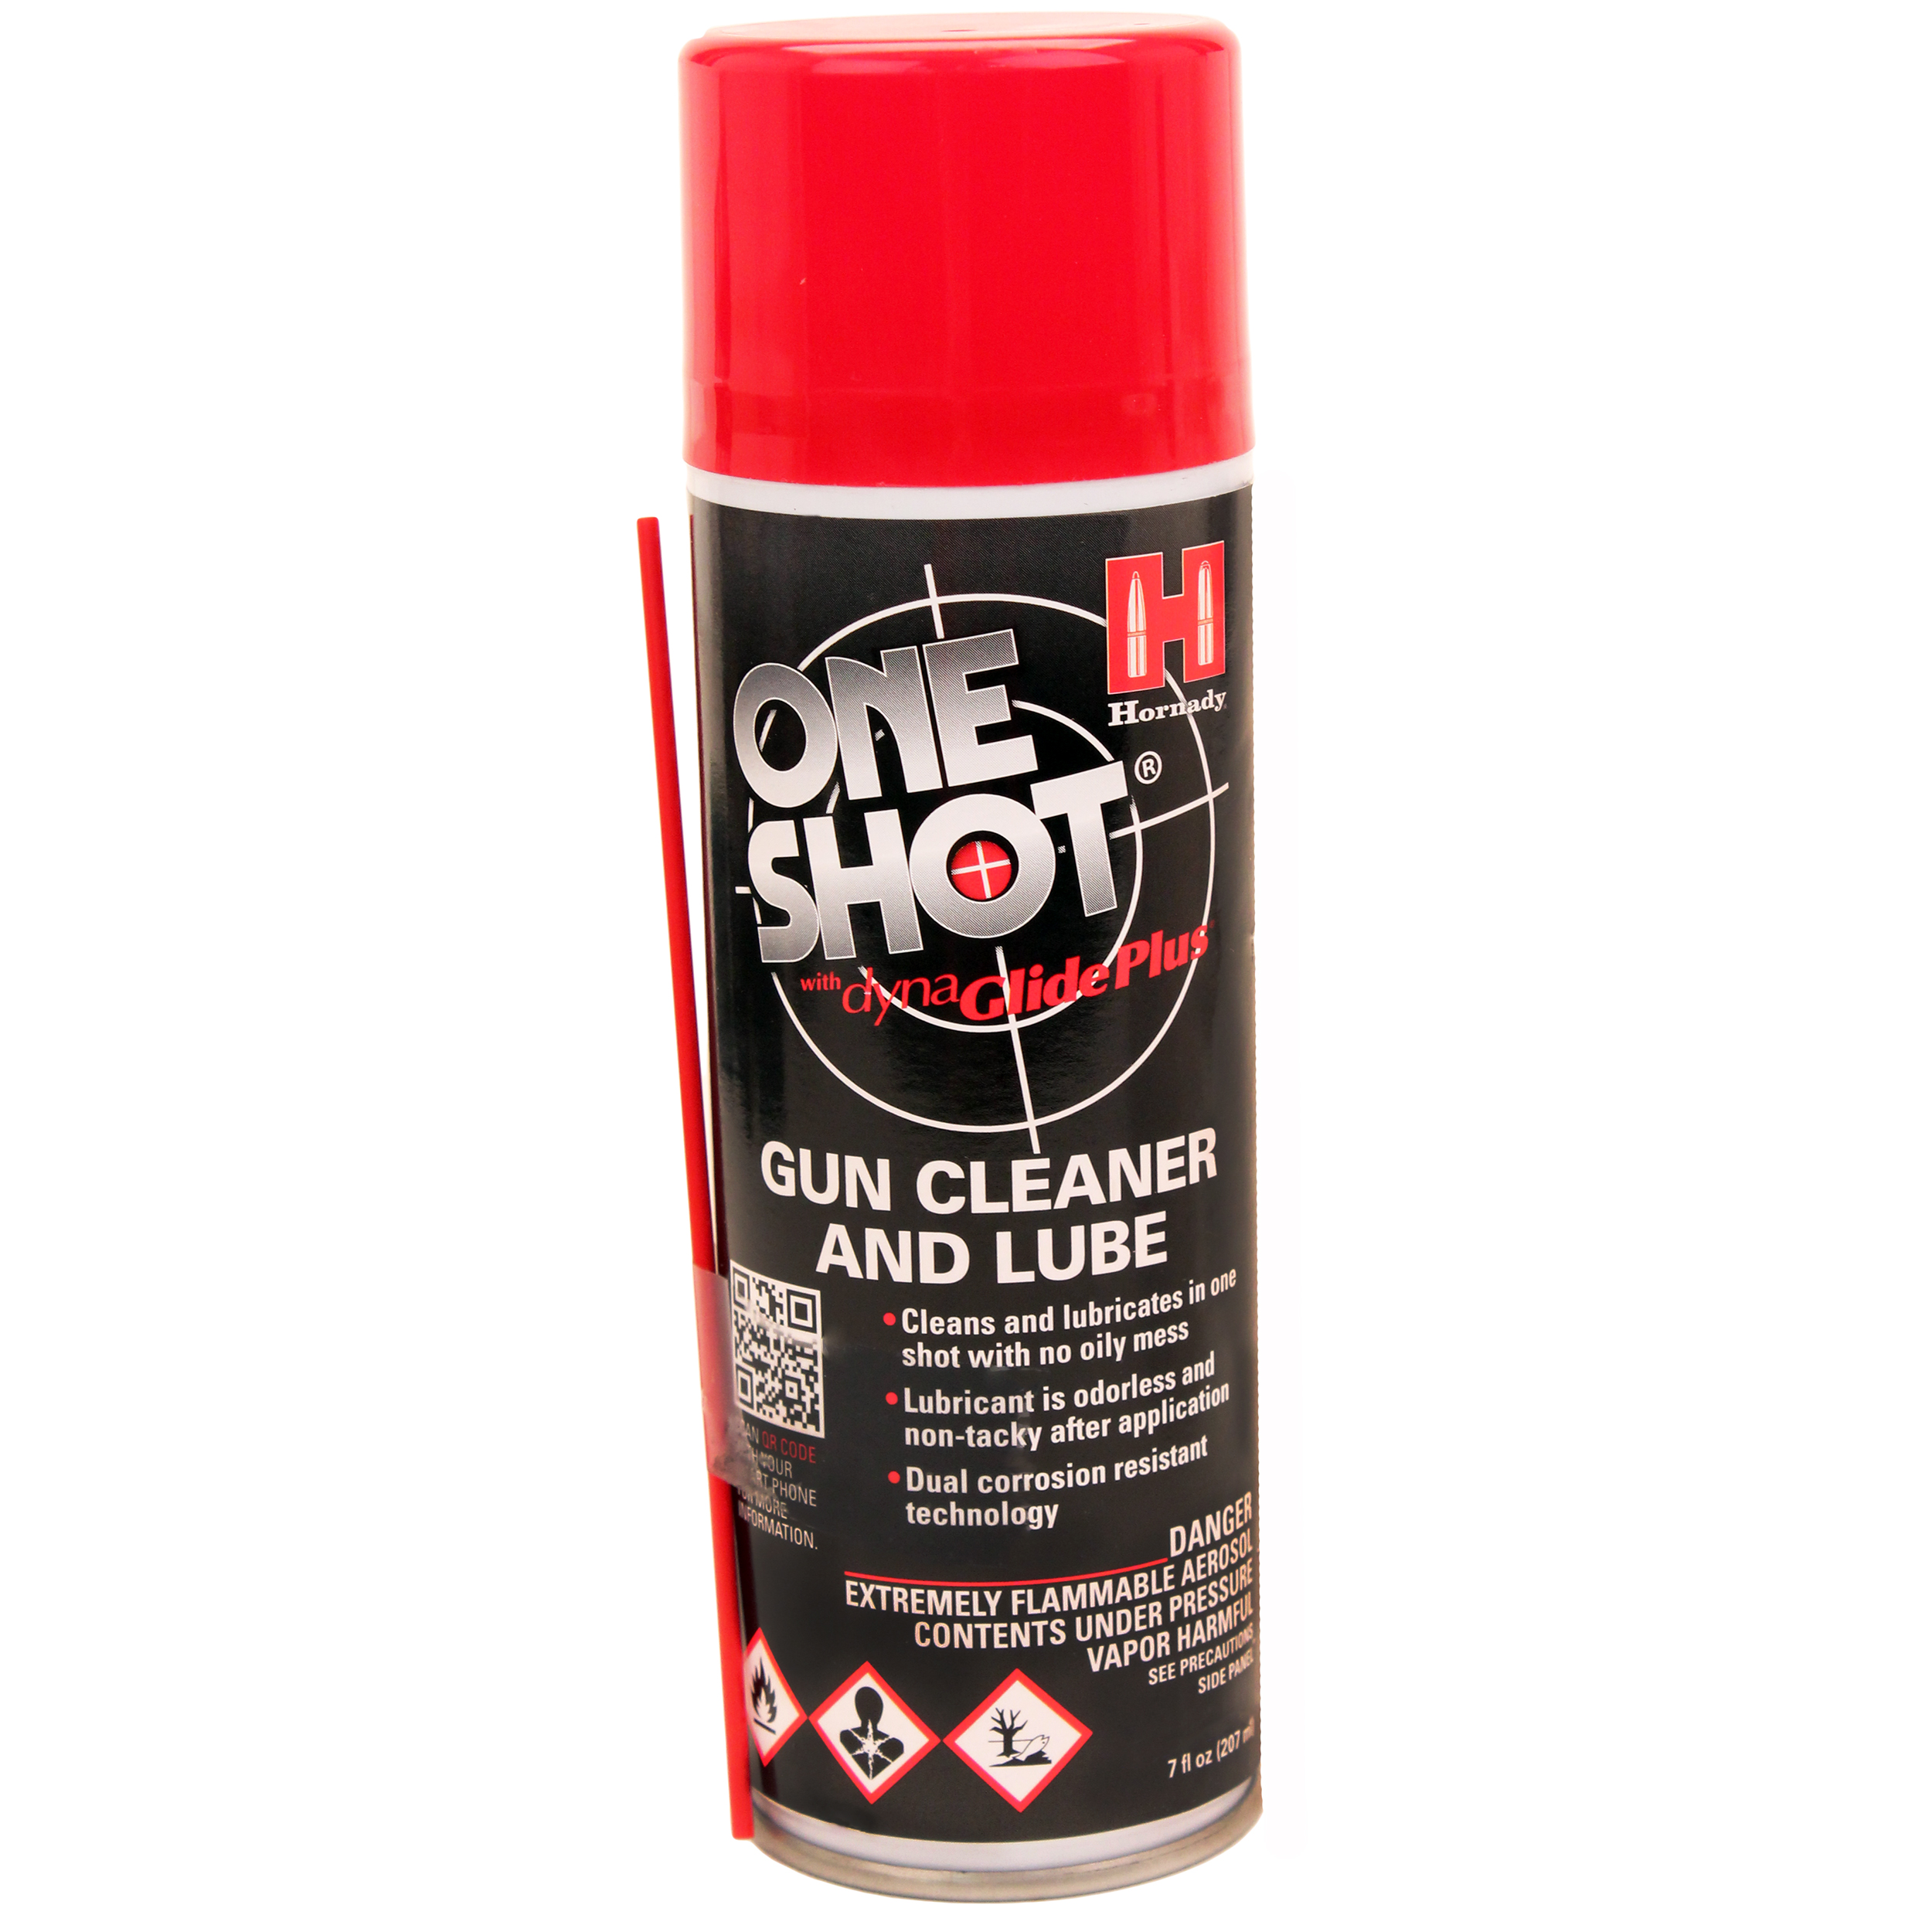 Hornady - One Shot - ONE SHOT GUN CLEANER for sale